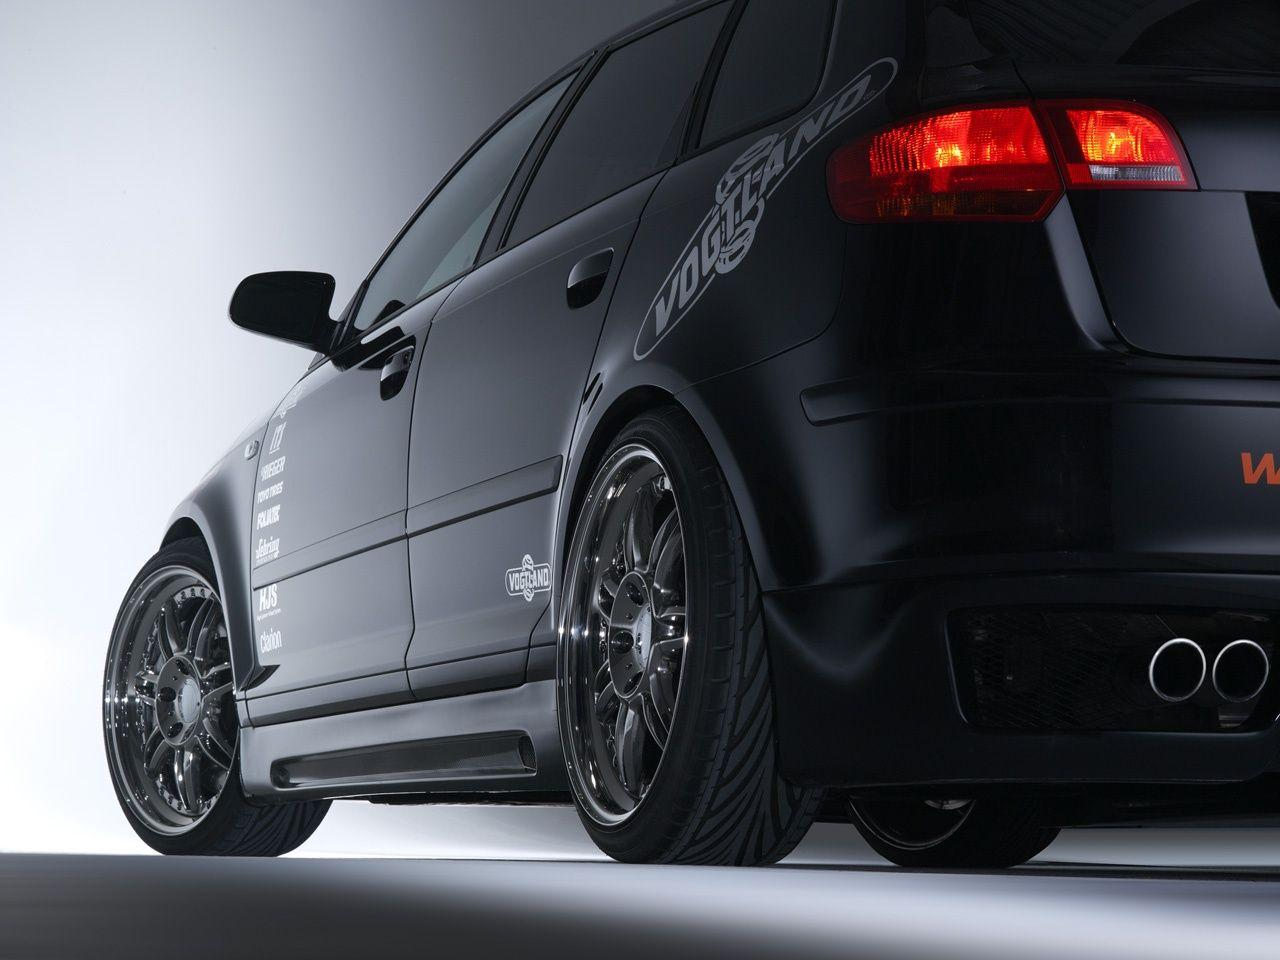 Best Wallpapers Audi A3 Wallpapers - illinois-liver